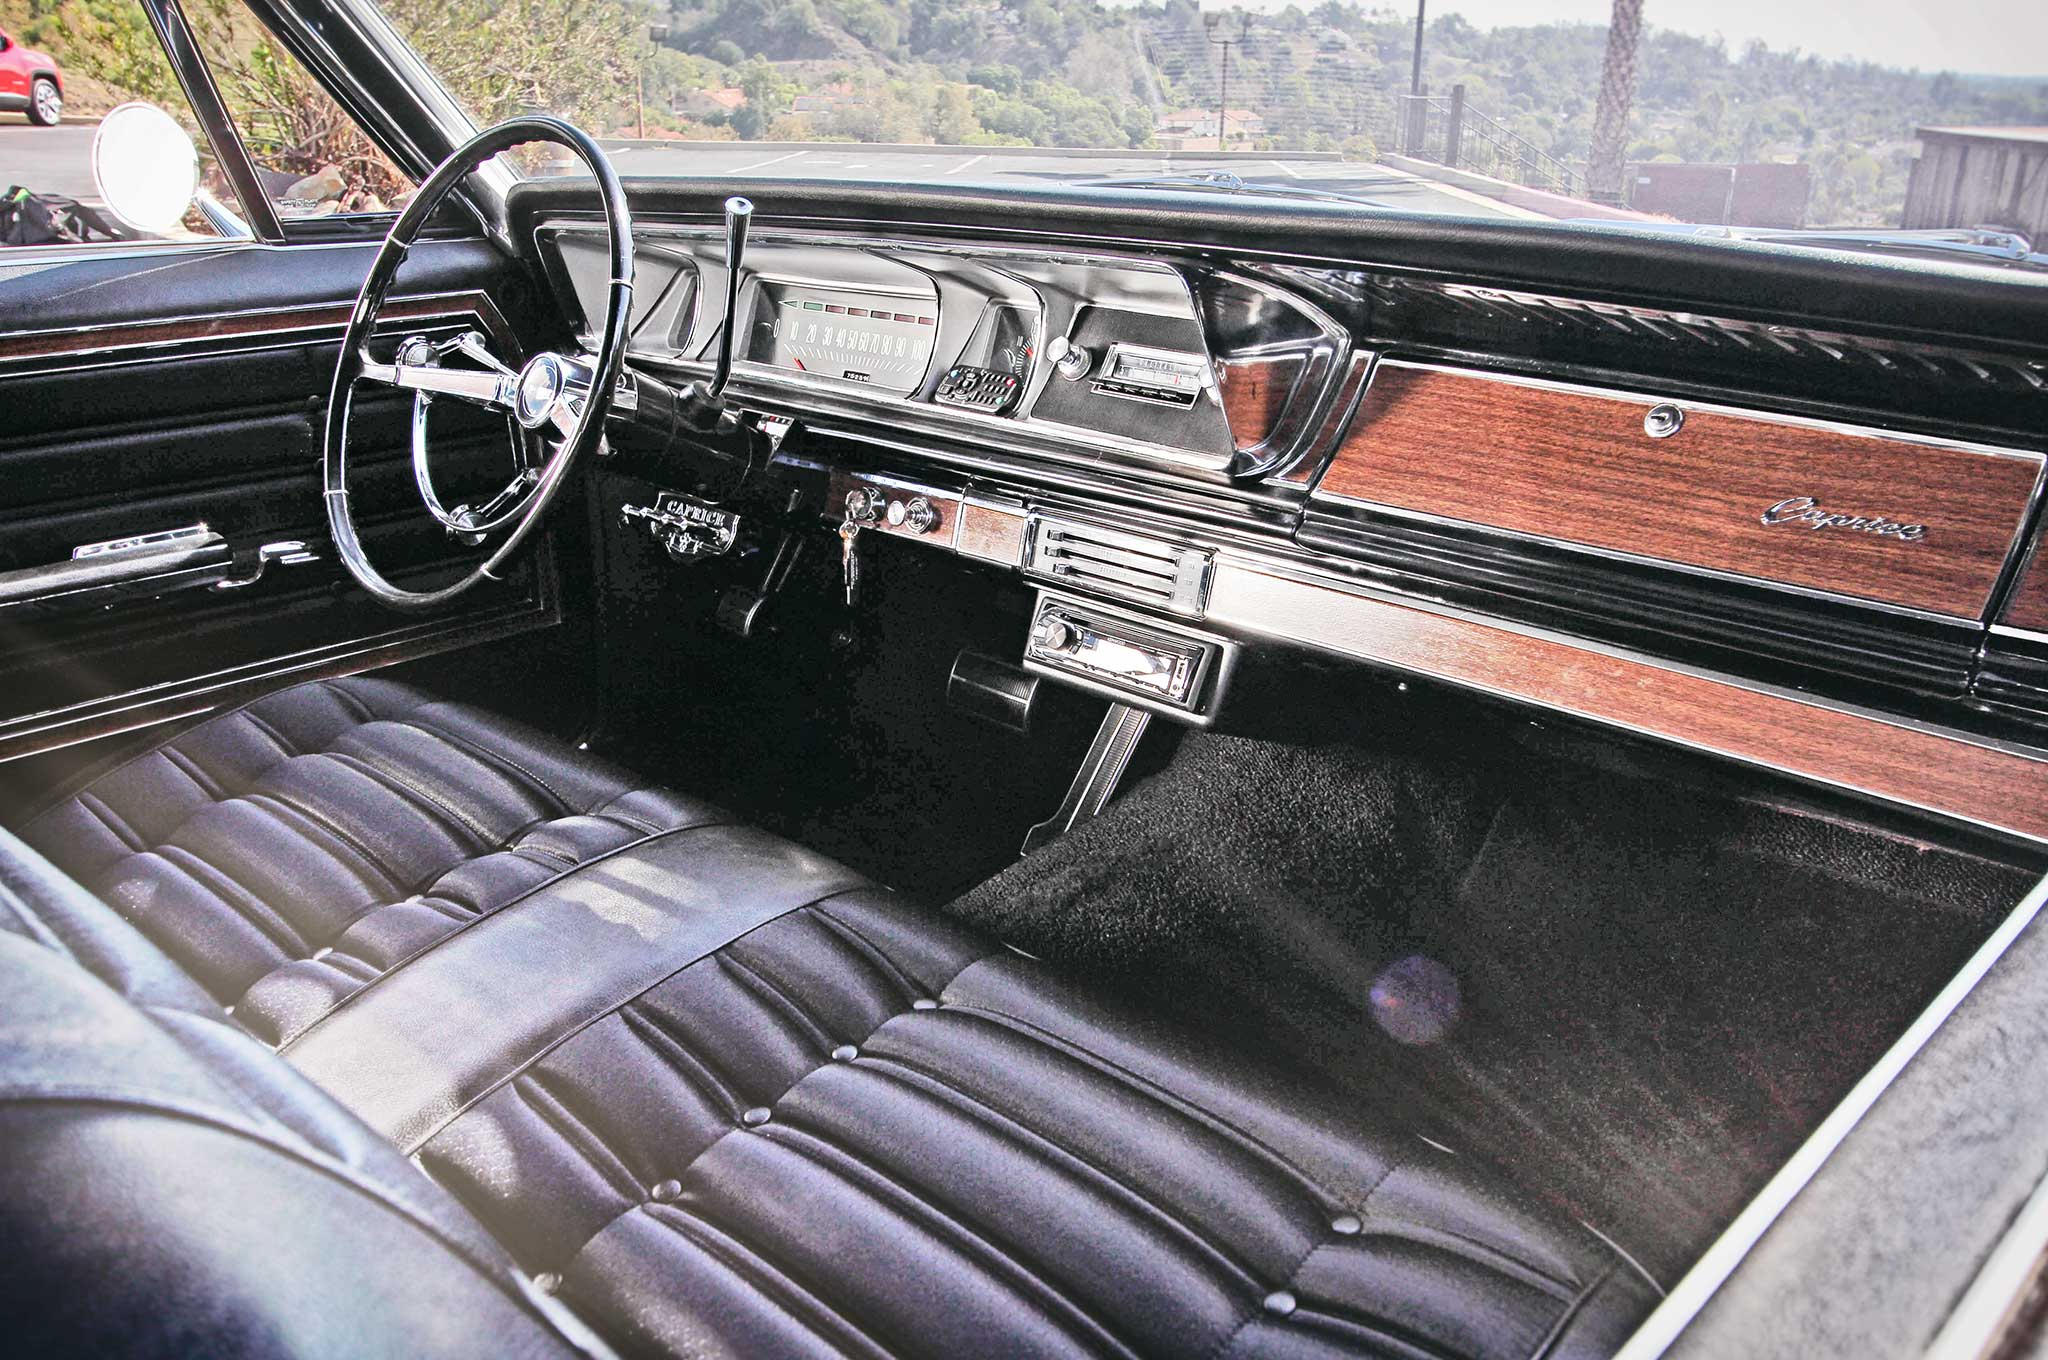 1966 Chevrolet Caprice Hooked On A Feeling Lowrider